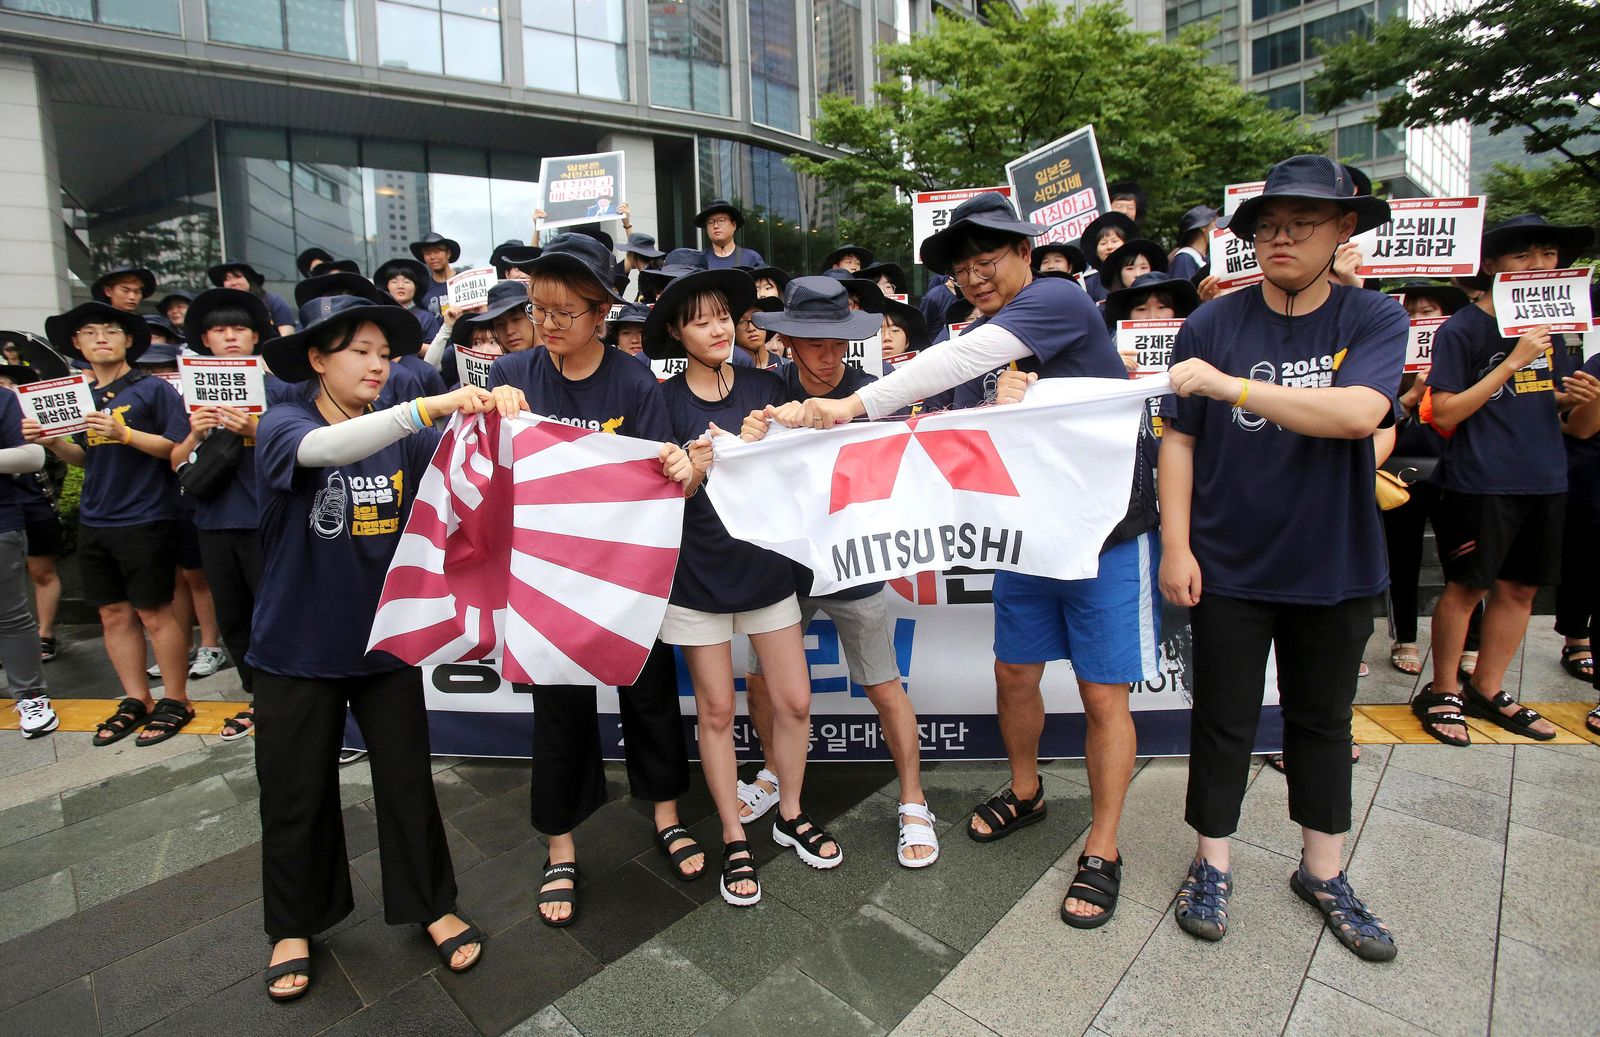 South Korean college students tear banners showing an image of a Japanese rising sun flag and the logo of Mitsubishi Corp. during a rally to denounce Japan's new trade restrictions on South Korea in front of the office of Mitsubishi Corp. in Seoul, South Korea, Wednesday, Aug. 7, 2019.{ } (AP Photo/Ahn Young-joon)